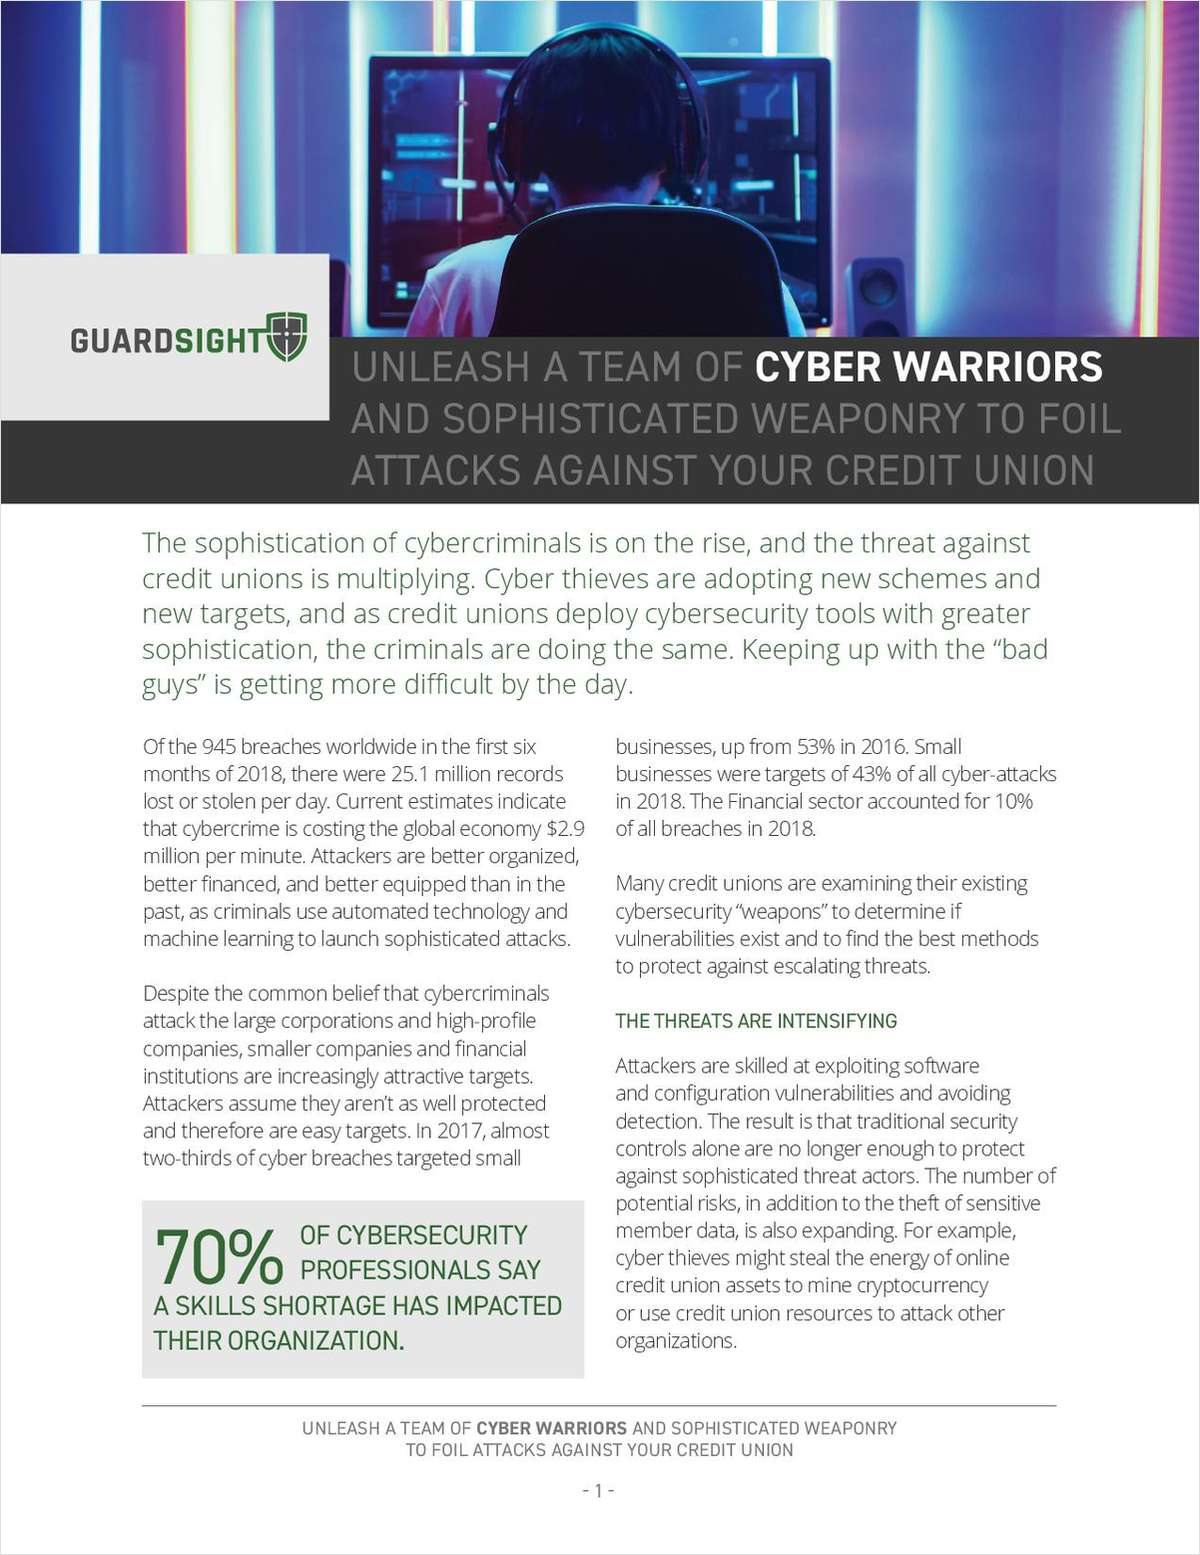 Unleash a Team of Cyber Warriors to Protect Your Credit Union